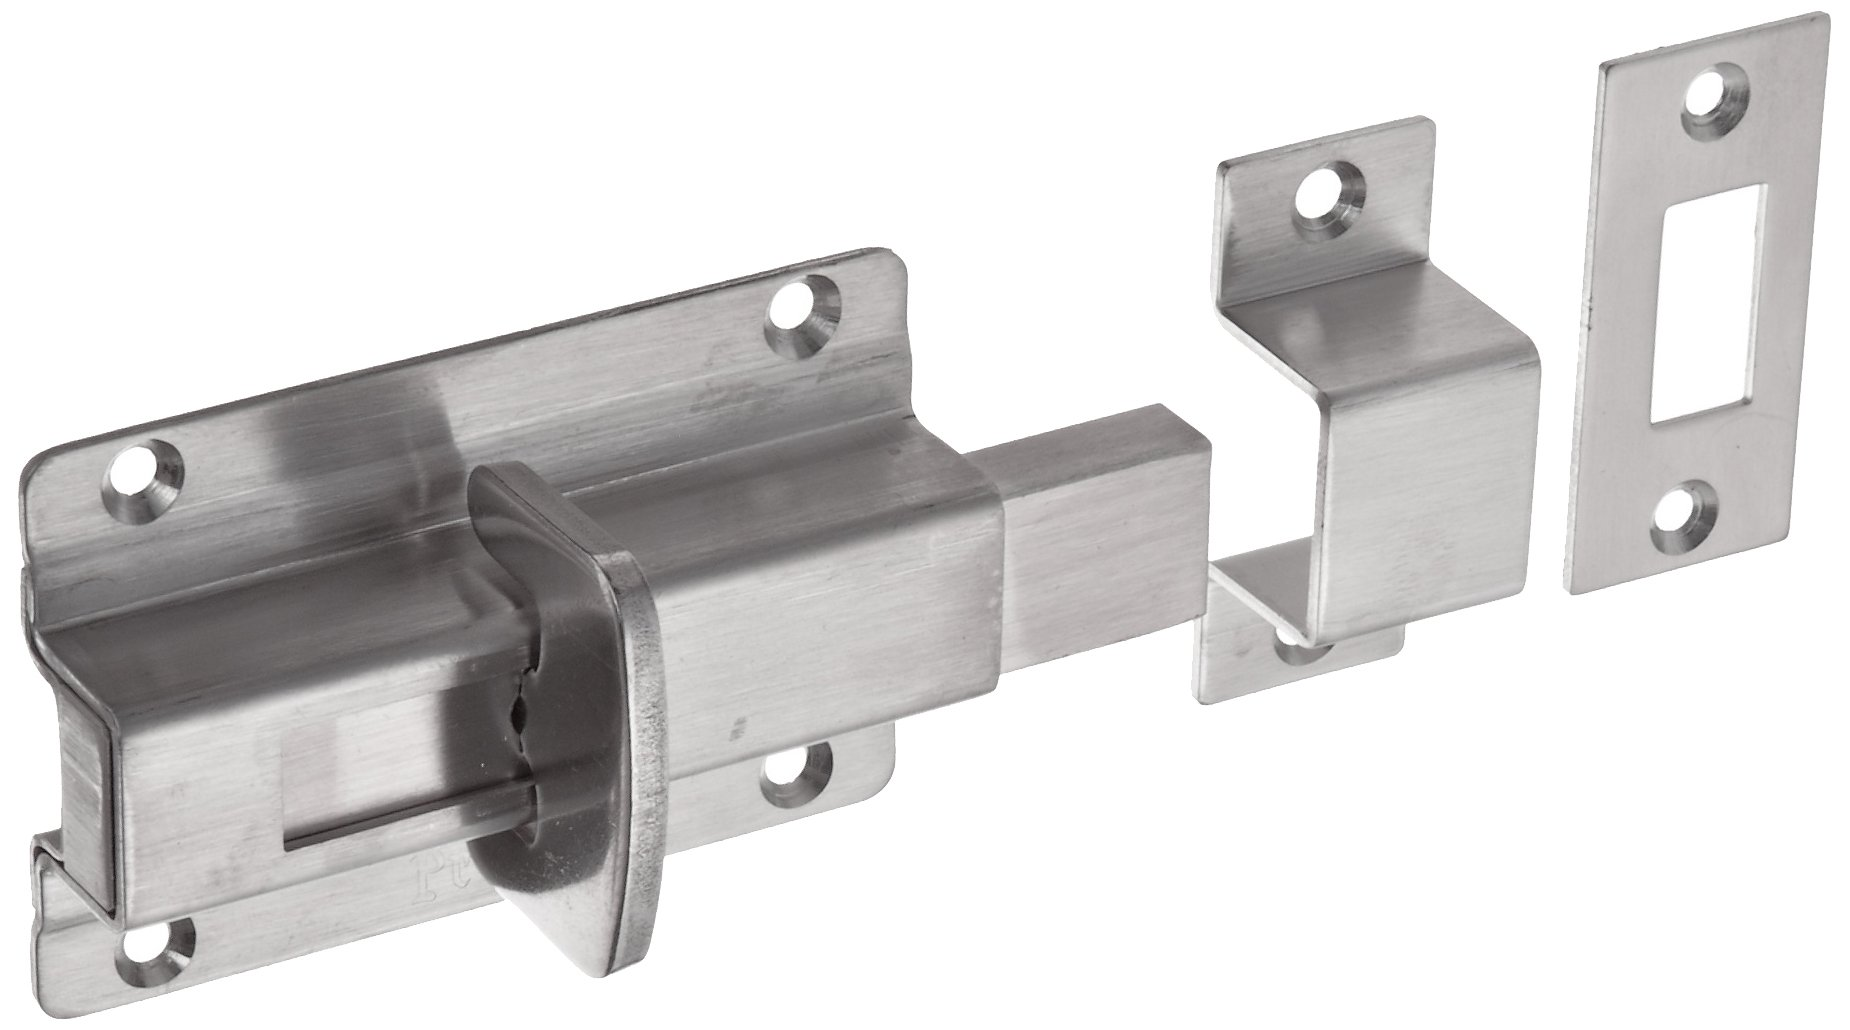 Stainless Steel 304 Slide Bolt Latch, Polished Finish, Non Locking, 2-61/64'' Bolt Plate Length, 27/32'' Throw Plate Length (Pack of 1)